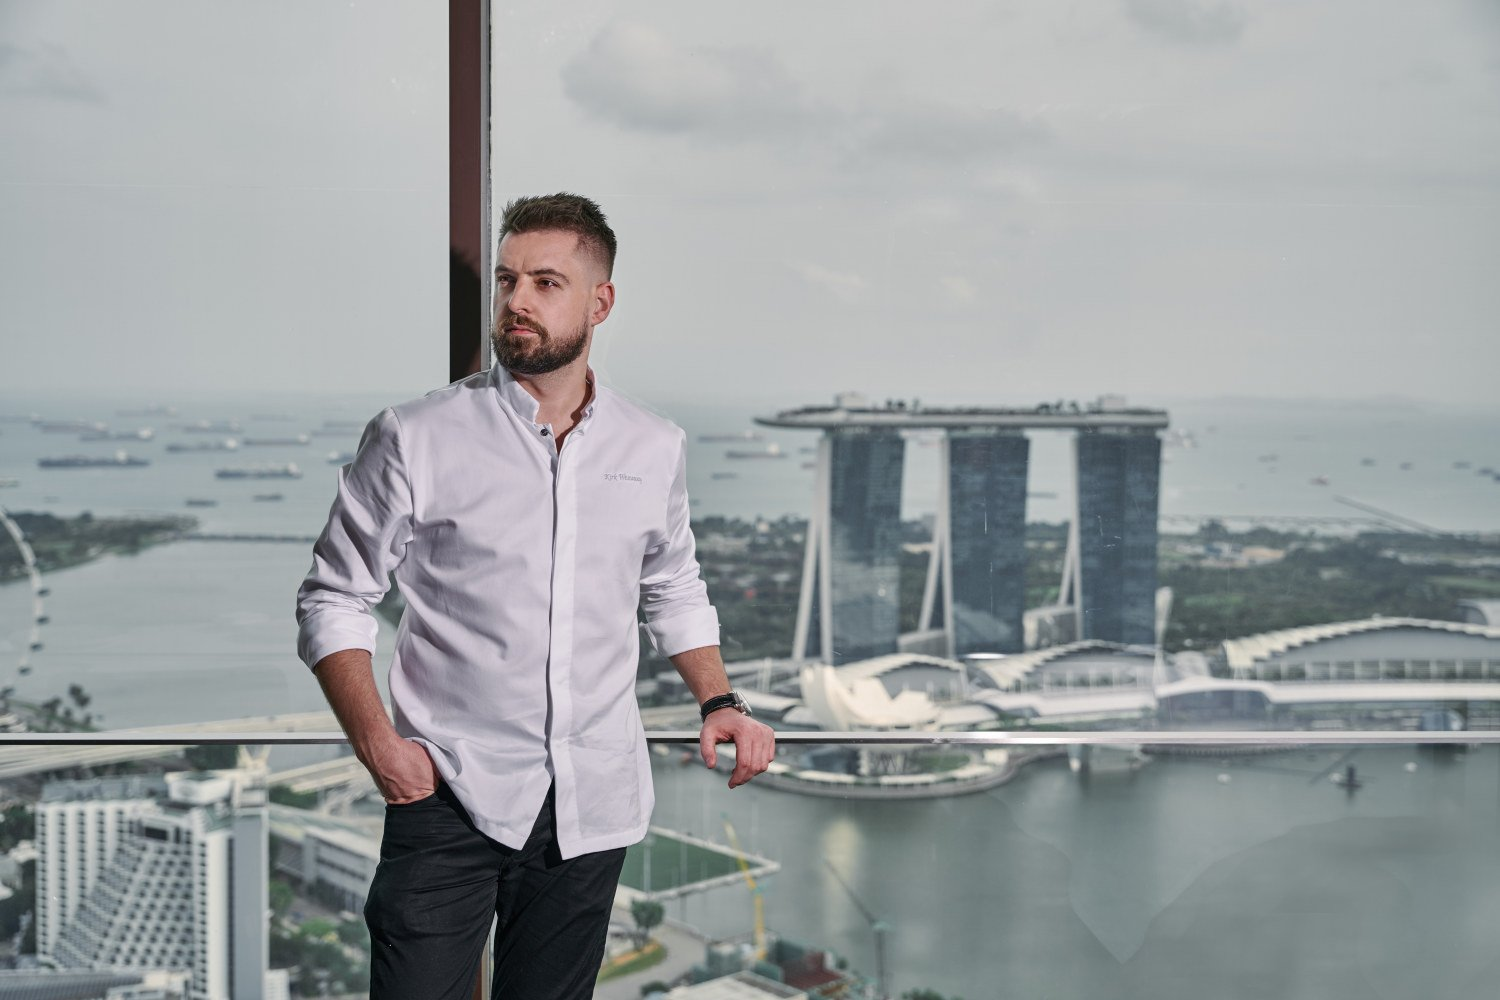 corporate photoshoot singapore a man in white shirt with the view of Marina Bay Sands